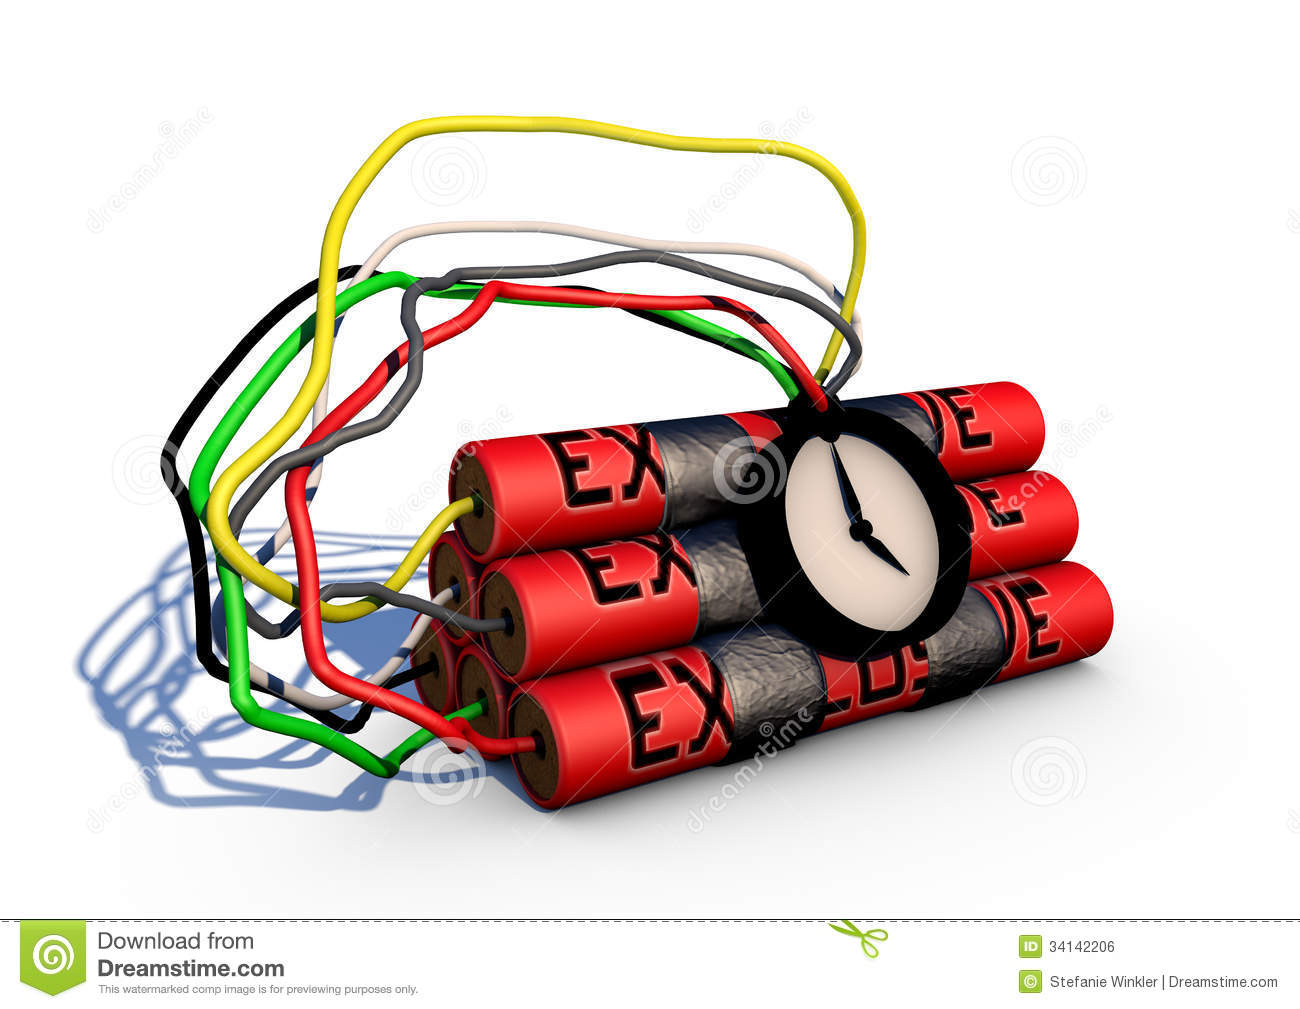 Timebomb Stock Illustration Of Conflict 34142206 Wiring Red Green White Black A Ticking Bomb With Yellow And Grey Cable